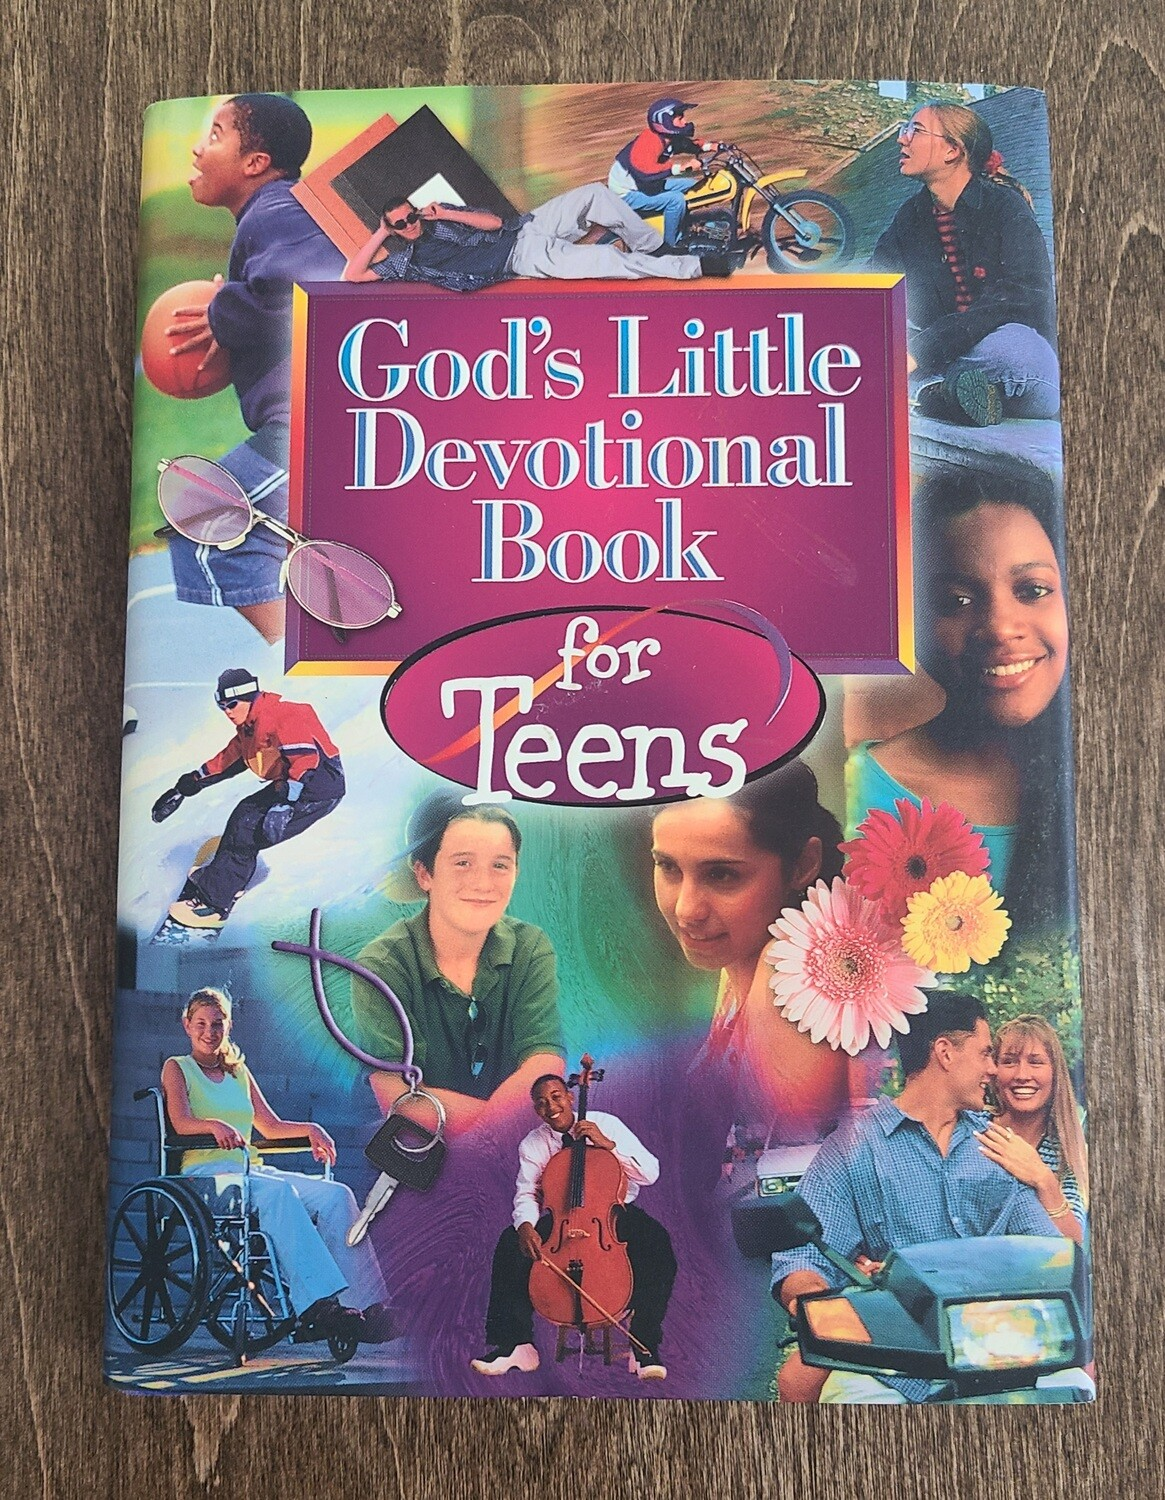 God's Little Devotional Book for Teens by Honor Books